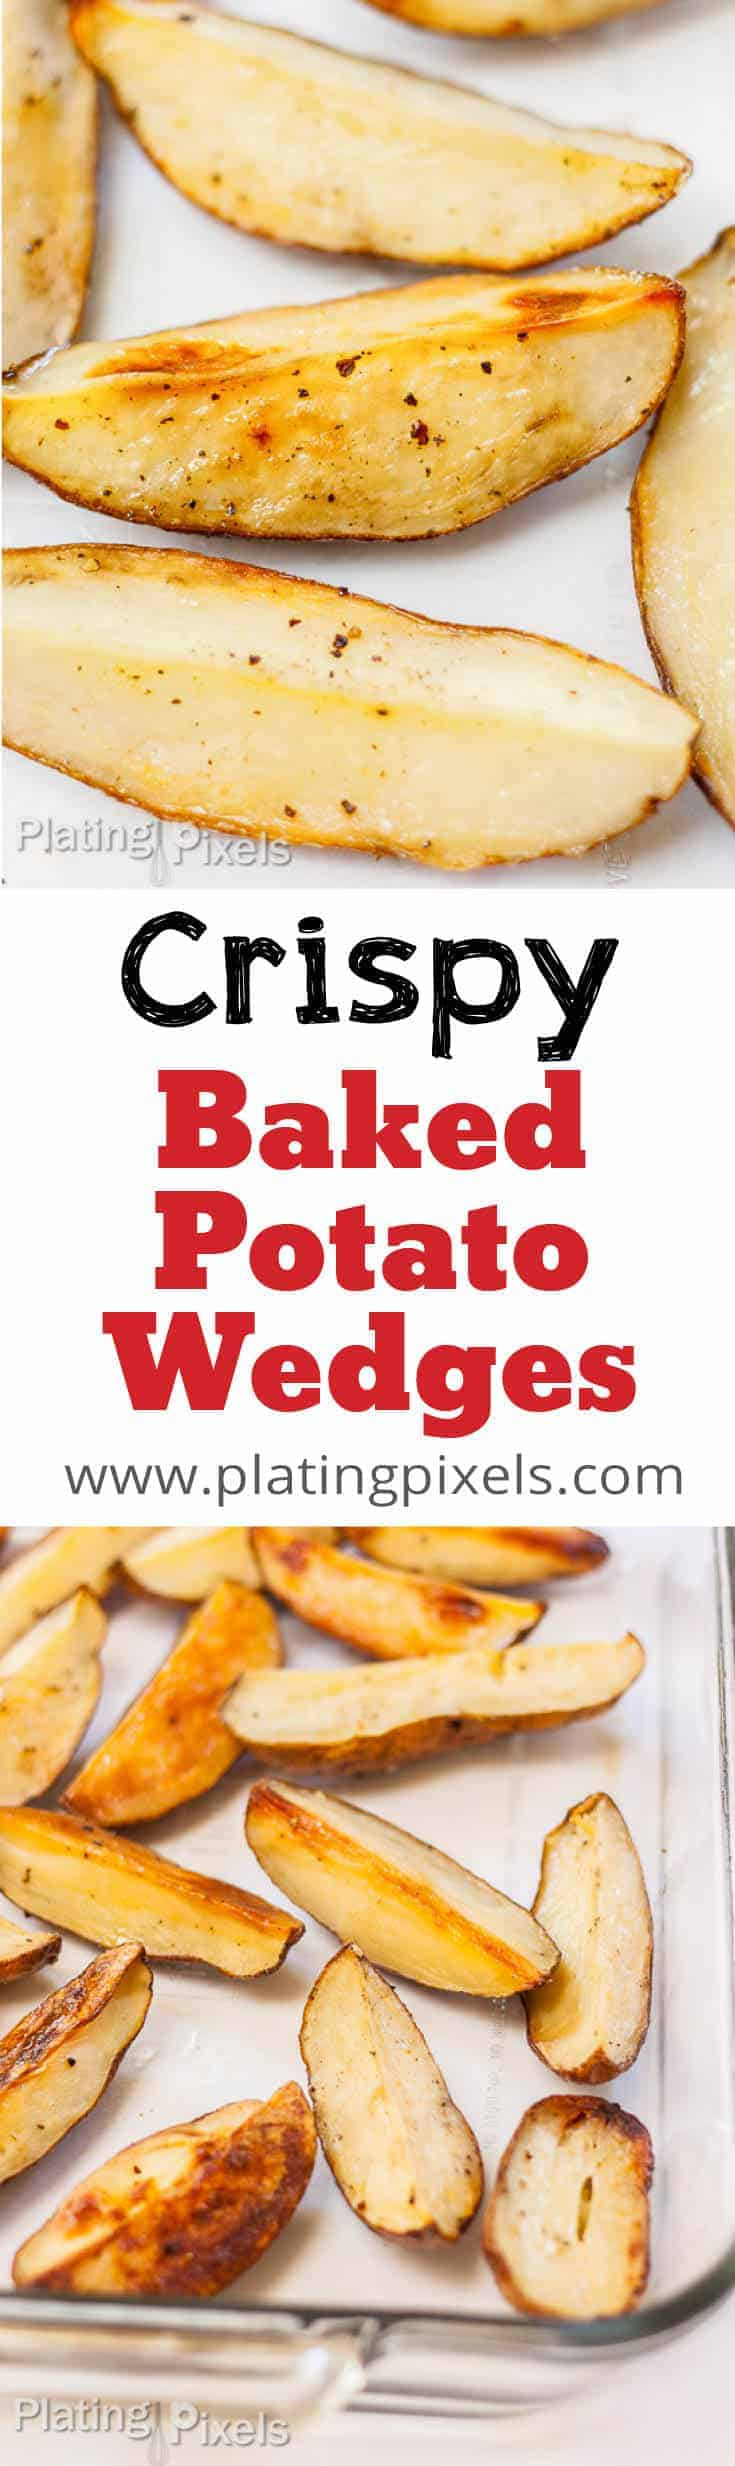 How Long To Bake Potato Wedges  How to Bake Potato Wedges Crispy & Healthy Plating